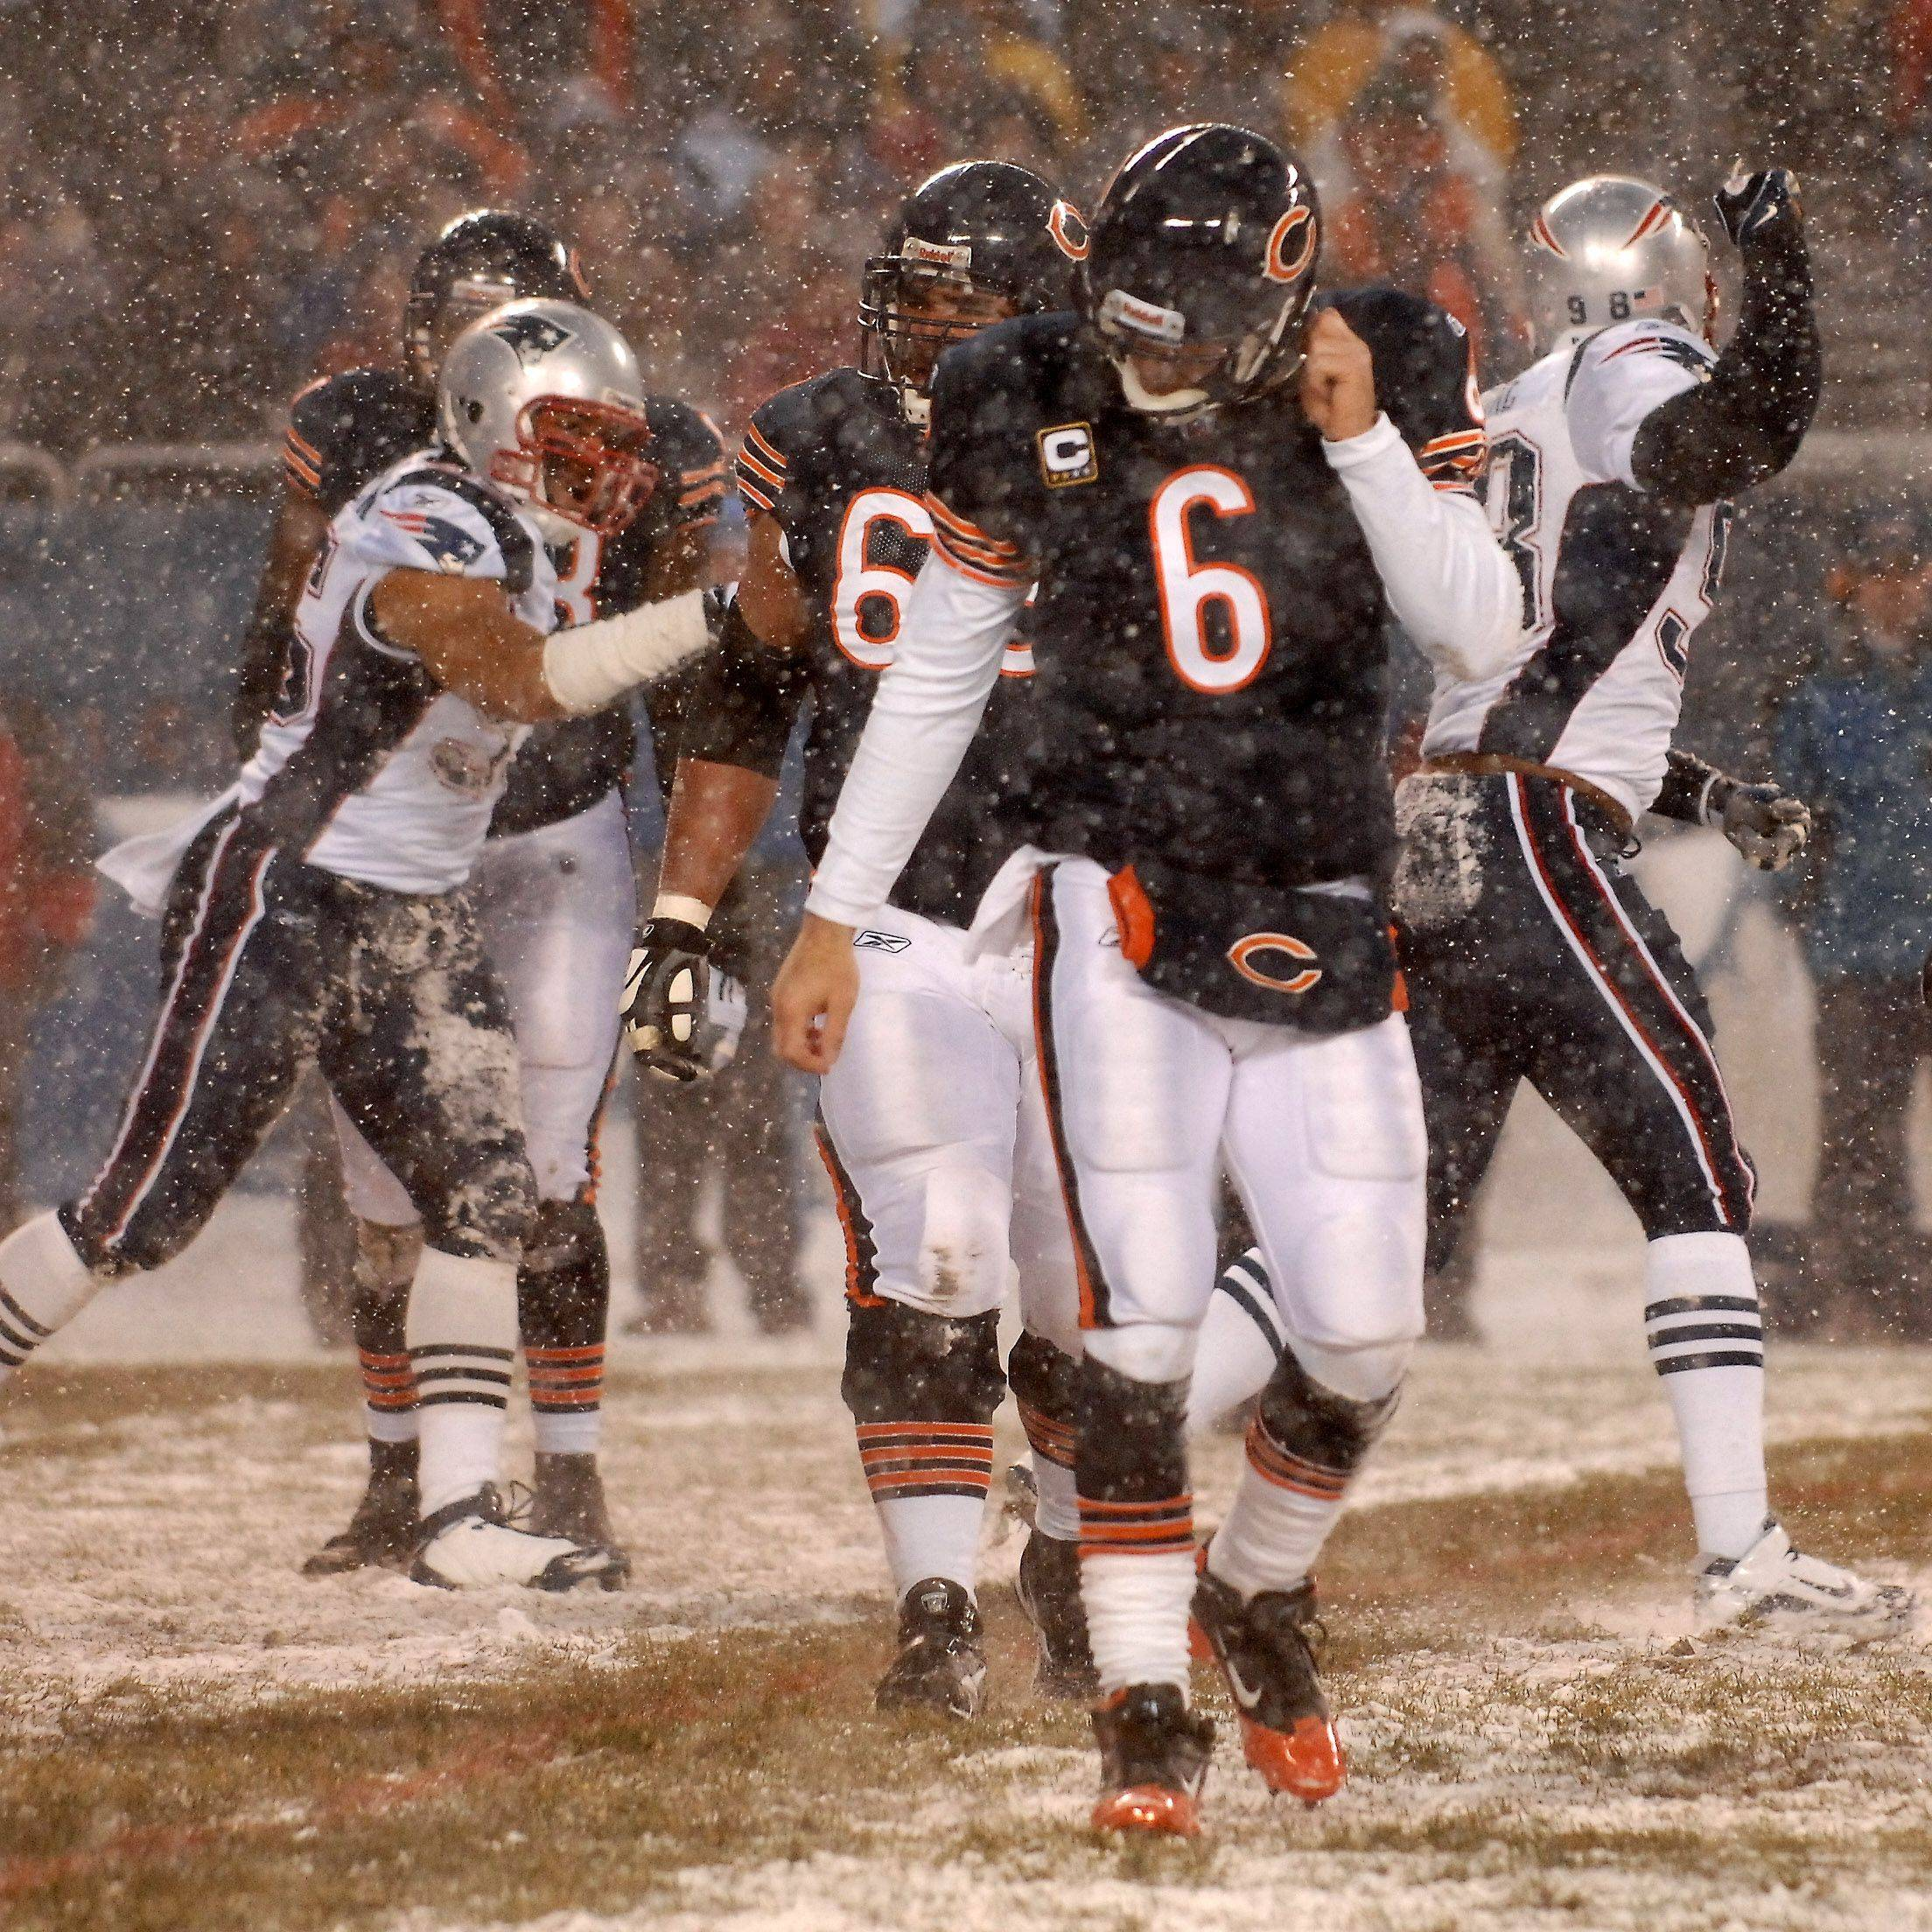 Weather or not, Bears simply outclassed by Pats